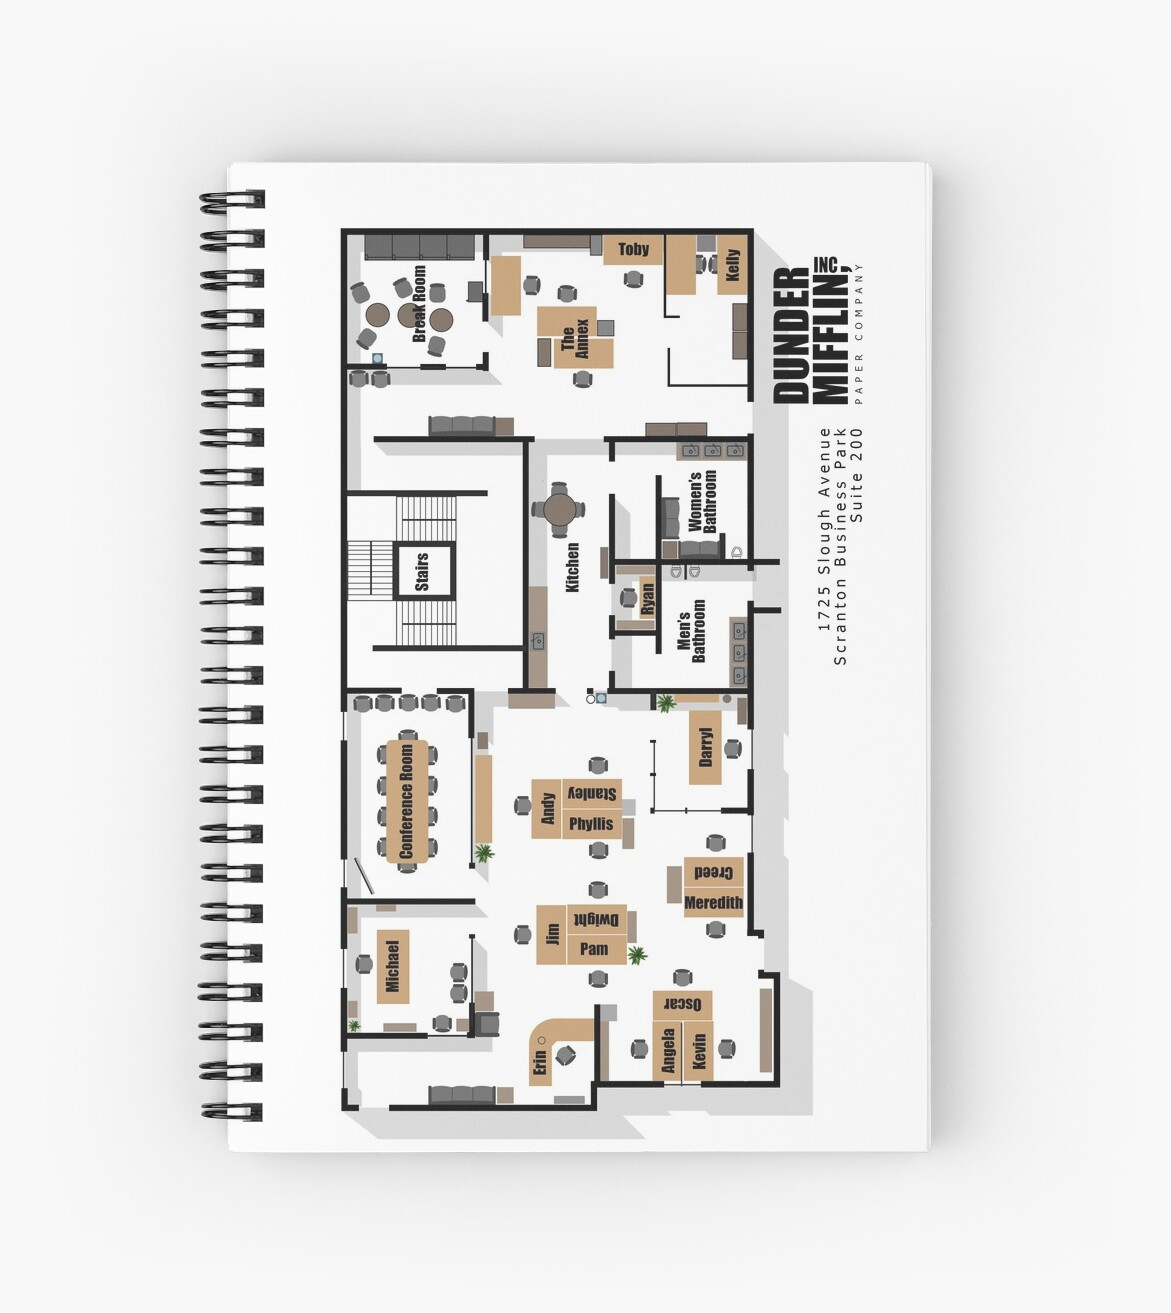 The office floor plan Teaching Kitchen The Office Floor Plan Dunder Mifflin 1725 Slough Avenue Scranton Business Park Suite 200 Prodigyprints The Office Floor Plan Dunder Mifflin 1725 Slough Avenue